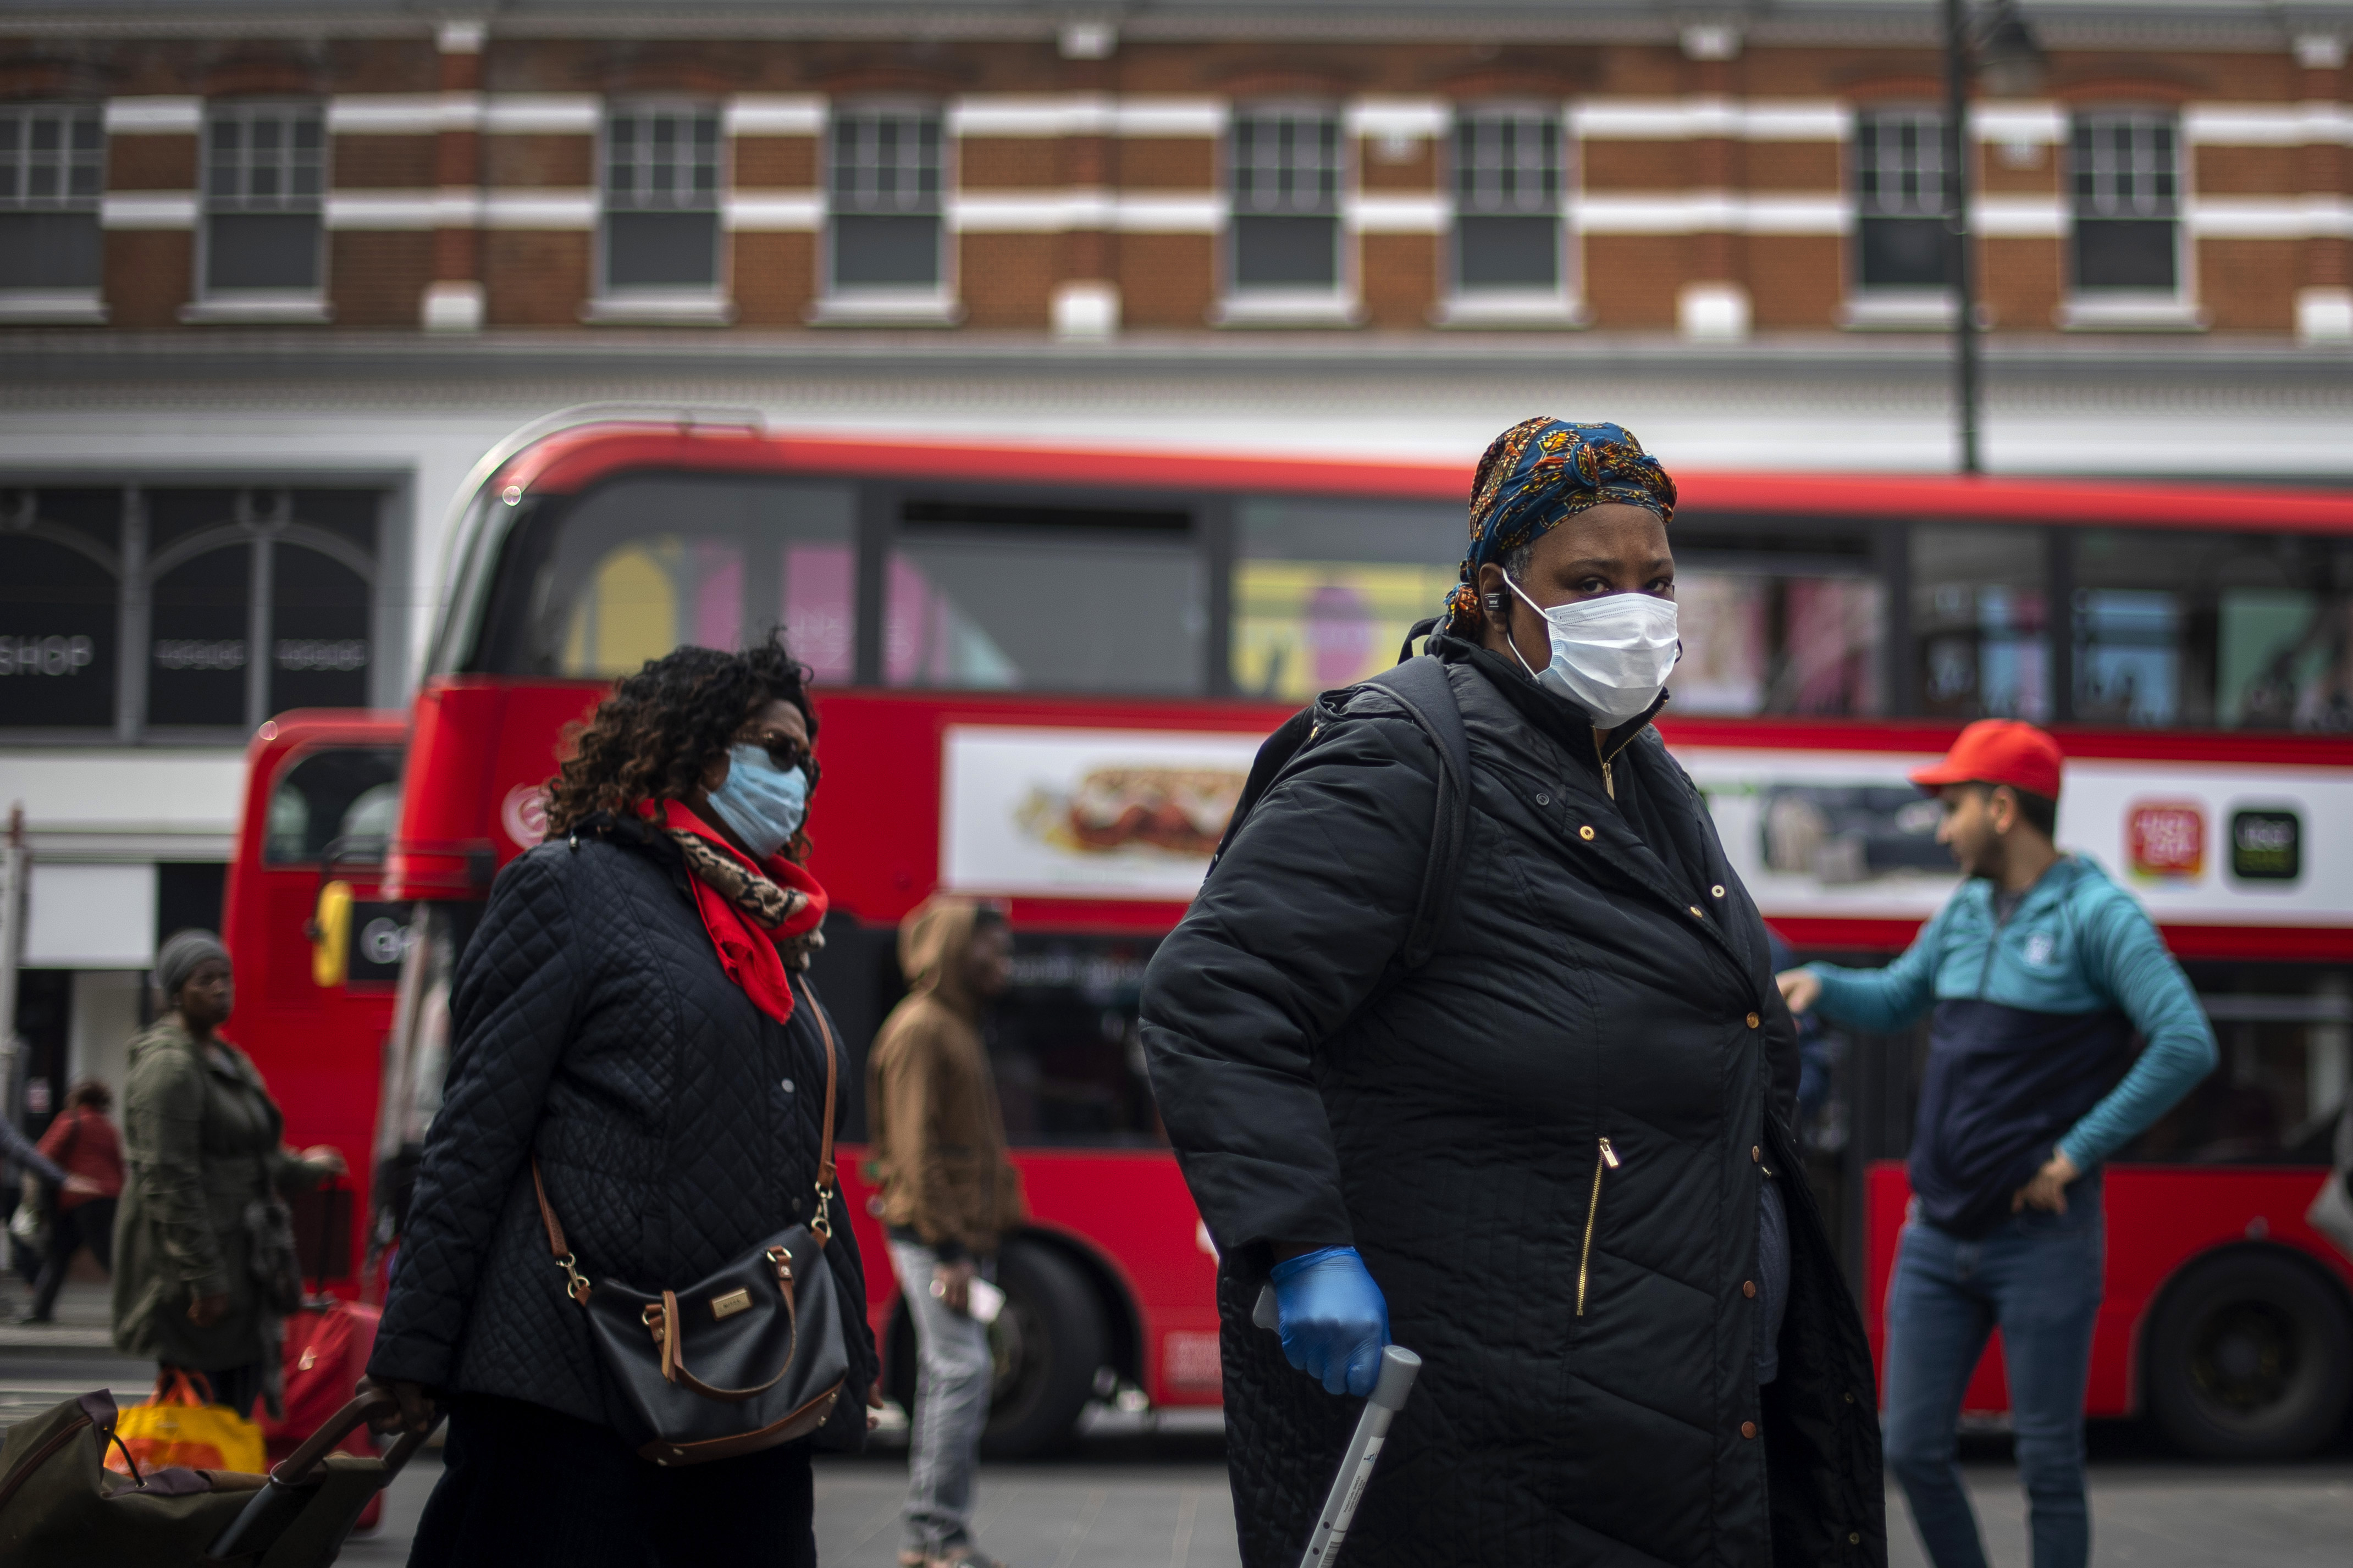 A woman in a protective face mask walks through Brixton Market in South London, as the UK continues in lockdown to help curb the spread of the coronavirus.